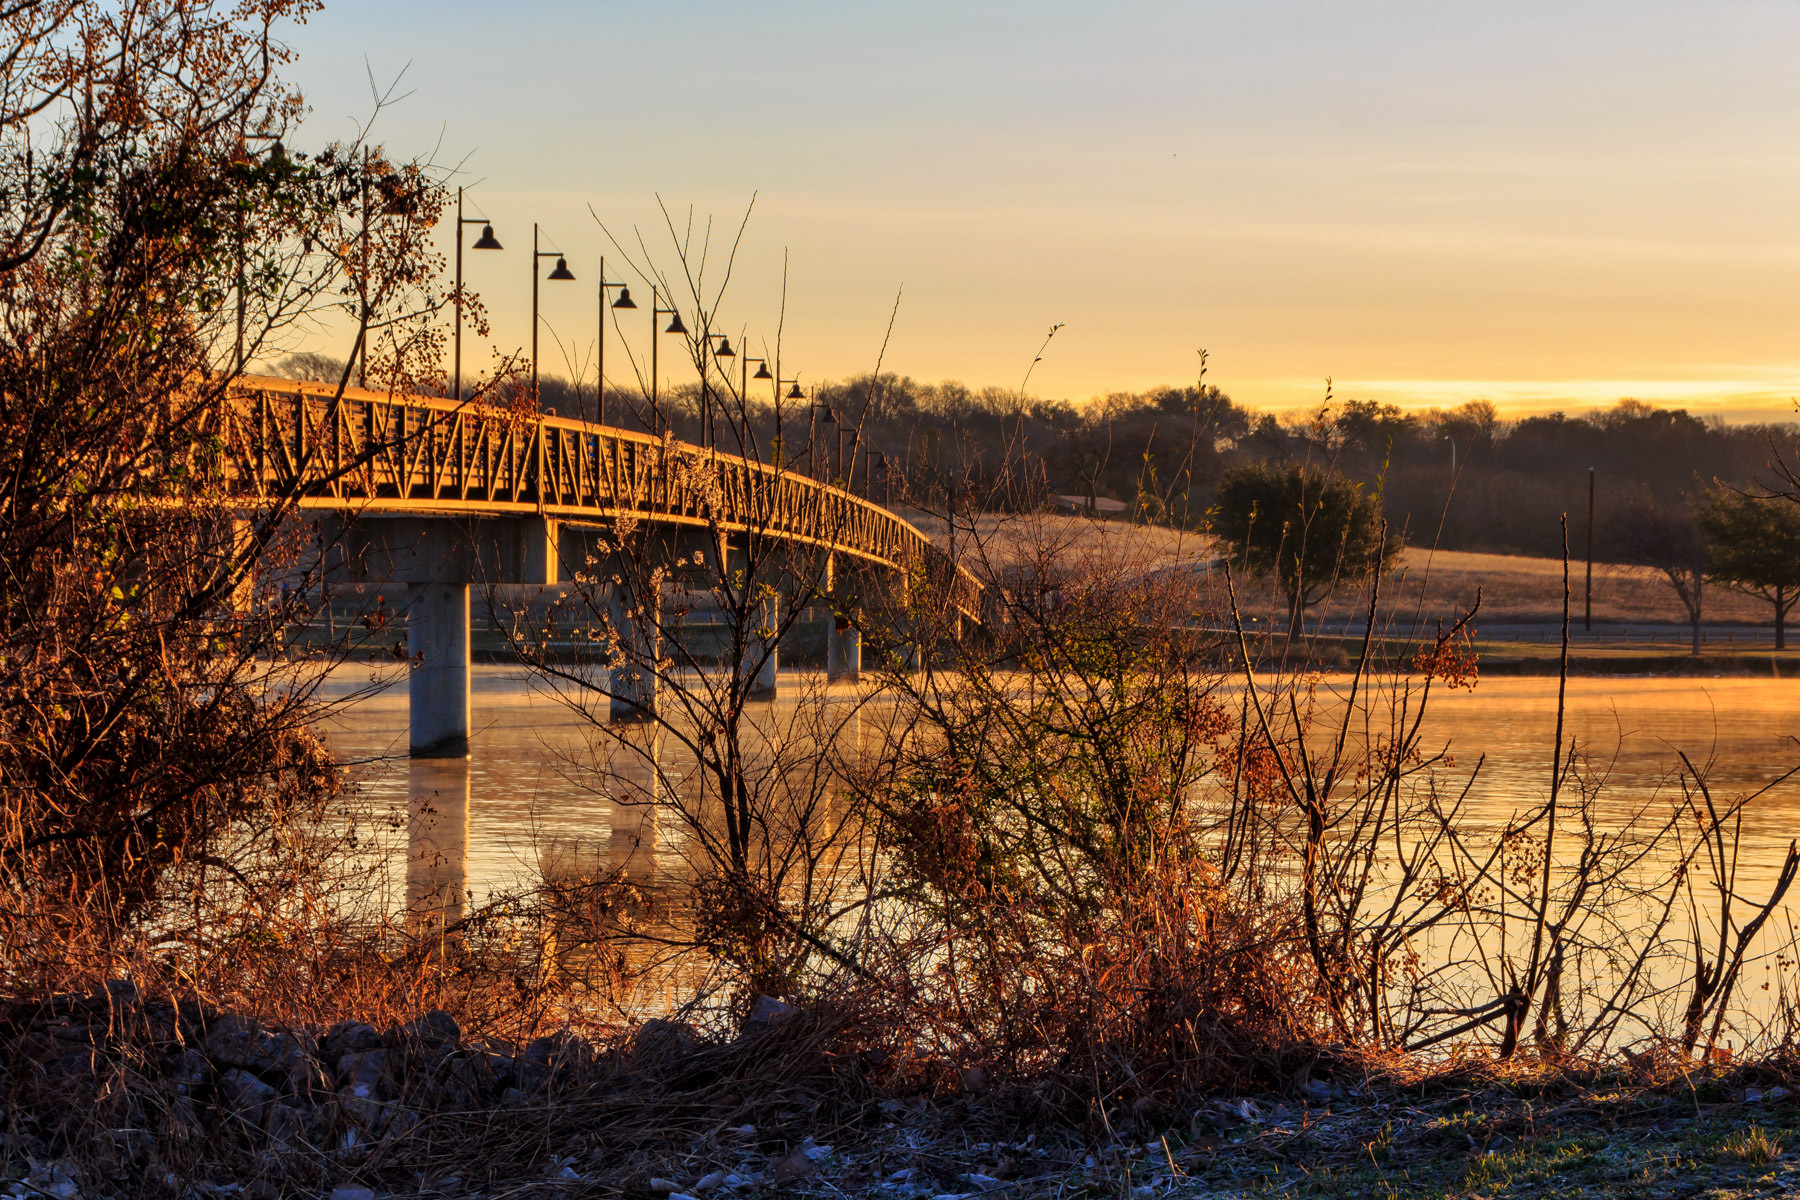 The golden light of the sun's first rays illuminates a footbridge over an inlet of Dallas' White Rock Lake.